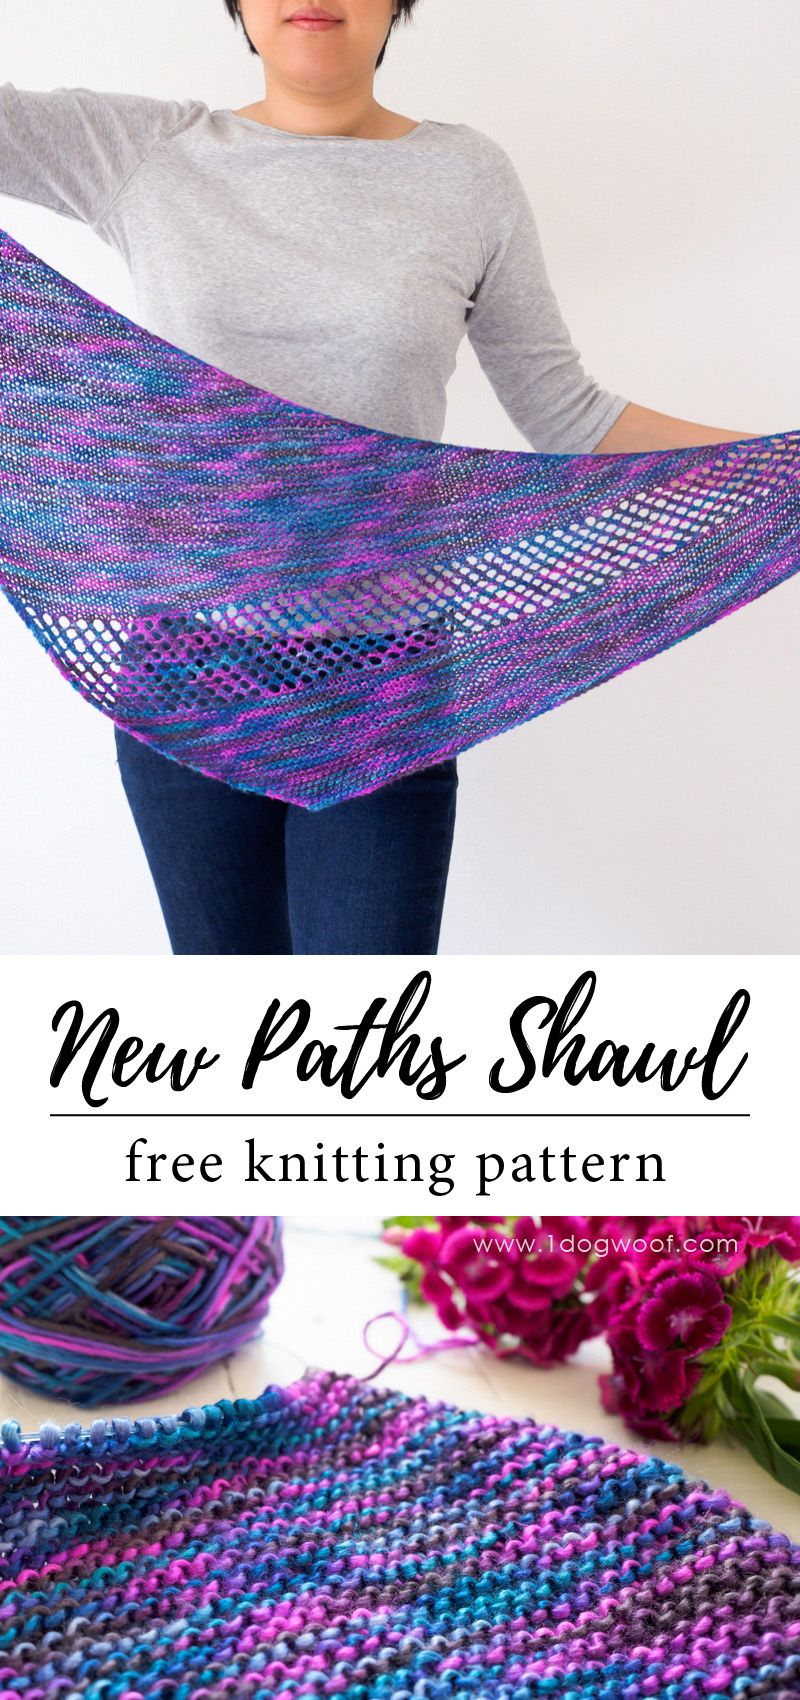 New Paths Shawl Free Knitting Pattern | Free knit shawl ...